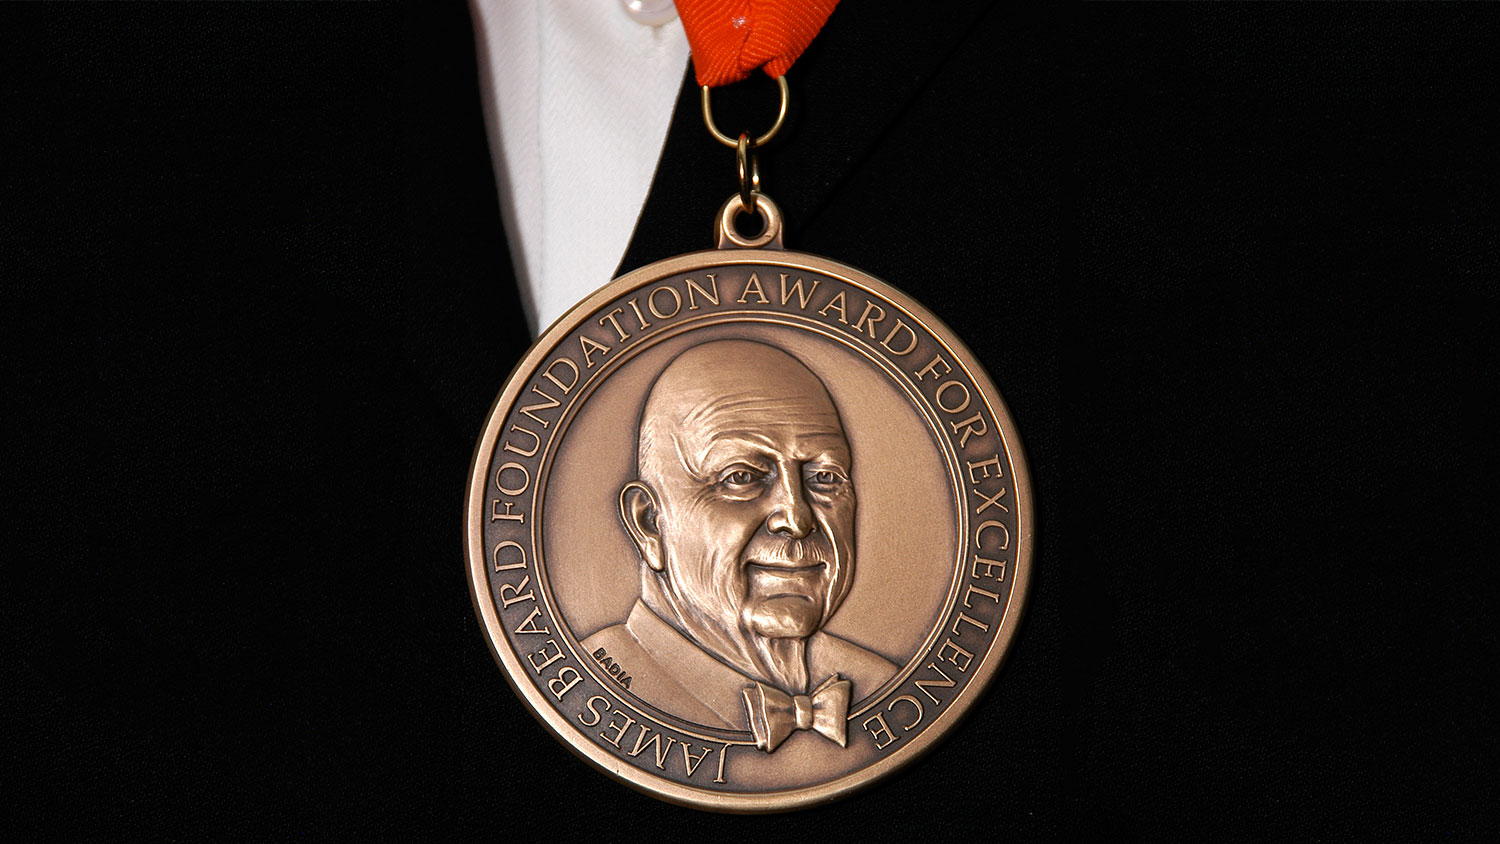 The James Beard Foundation Just Declared These 5 Restaurants 'American Classics'